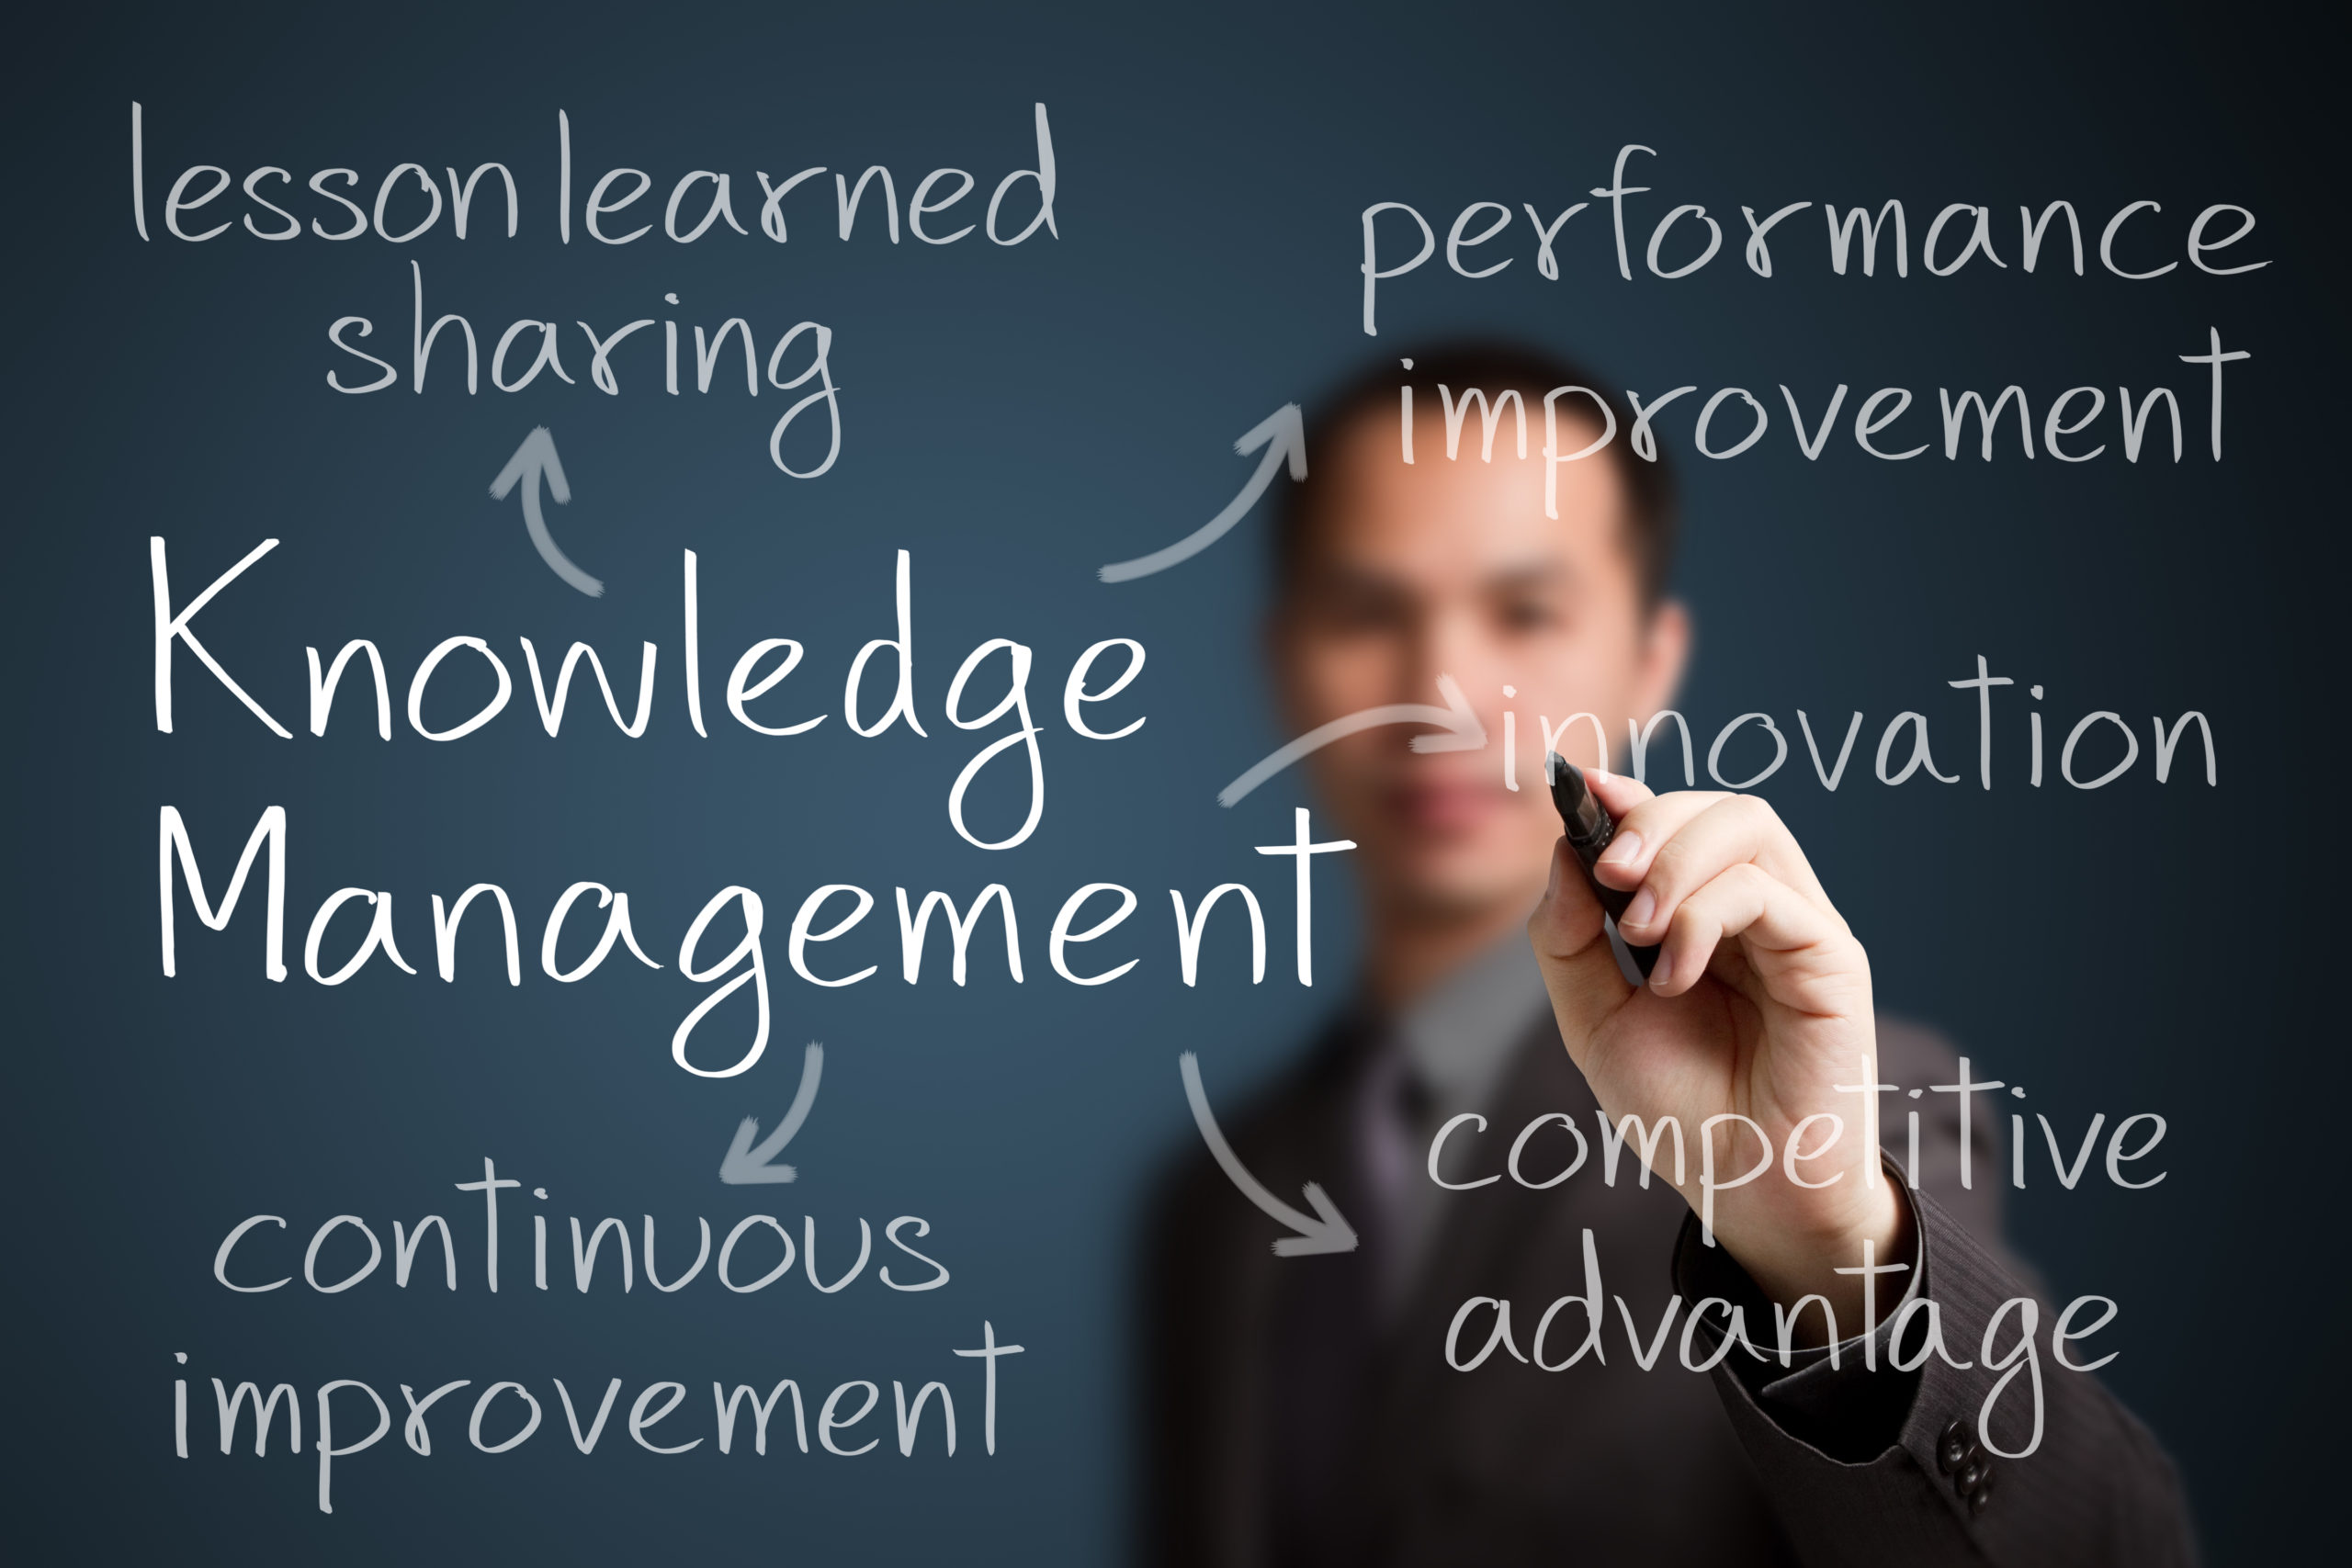 Why Knowledge Management Is An Important Part of Your Business Continuity Plan